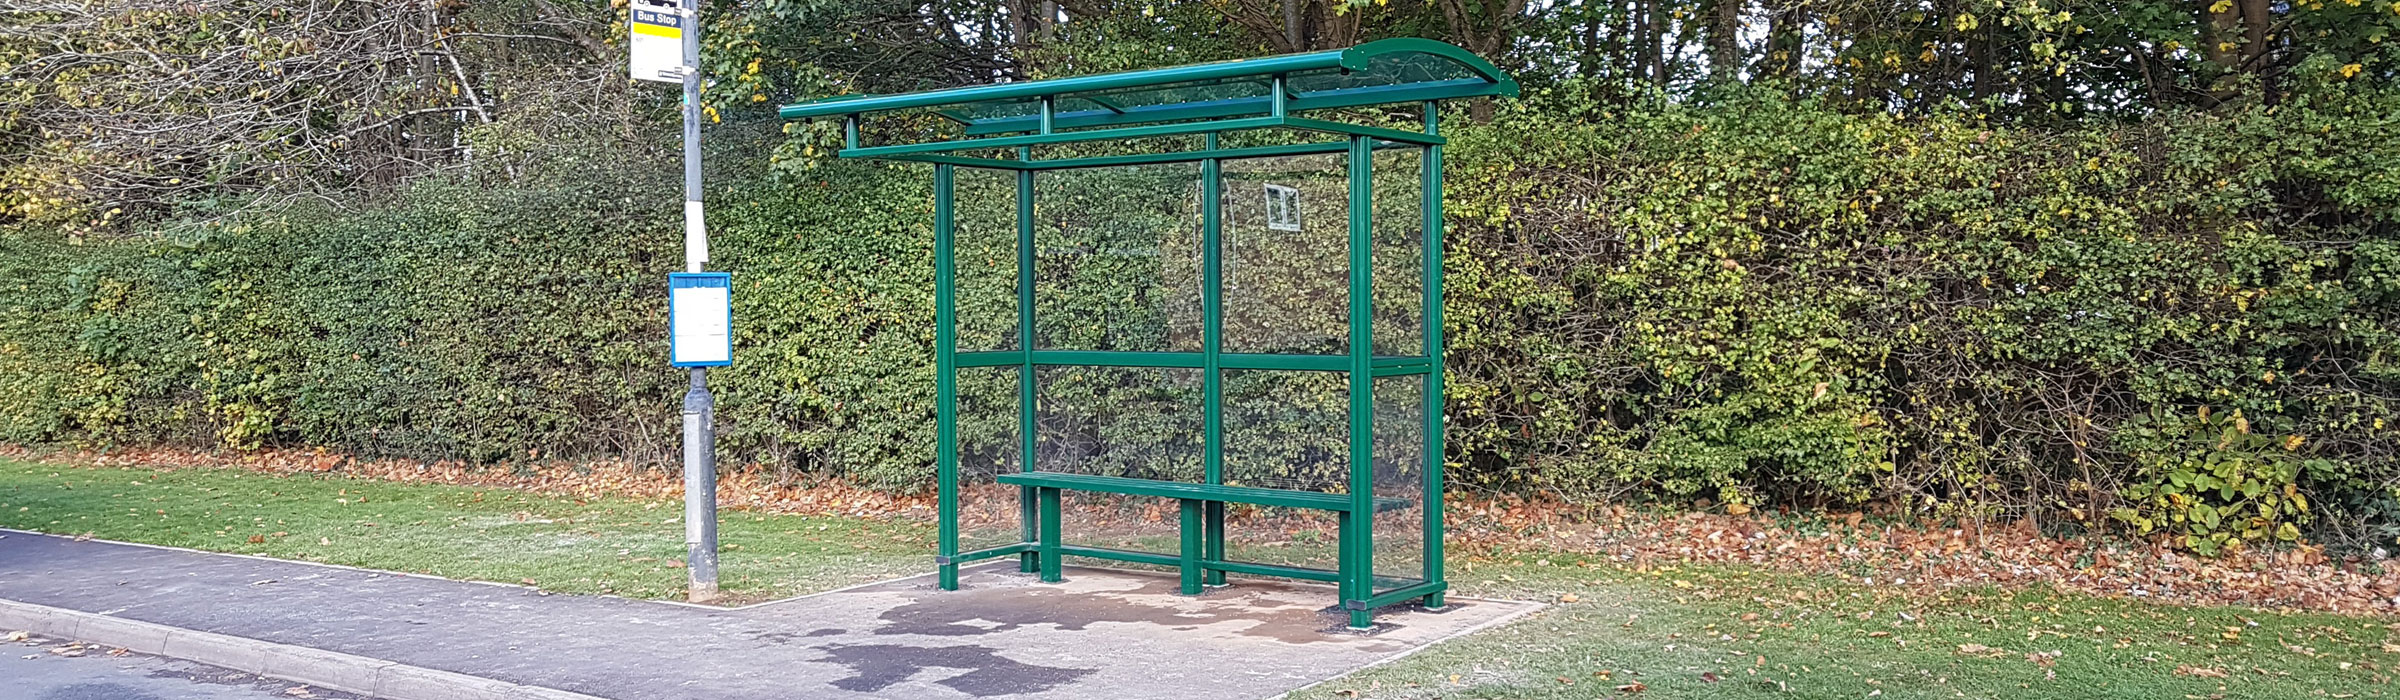 City Light Bus Shelters - Specifically produced for the UK market.